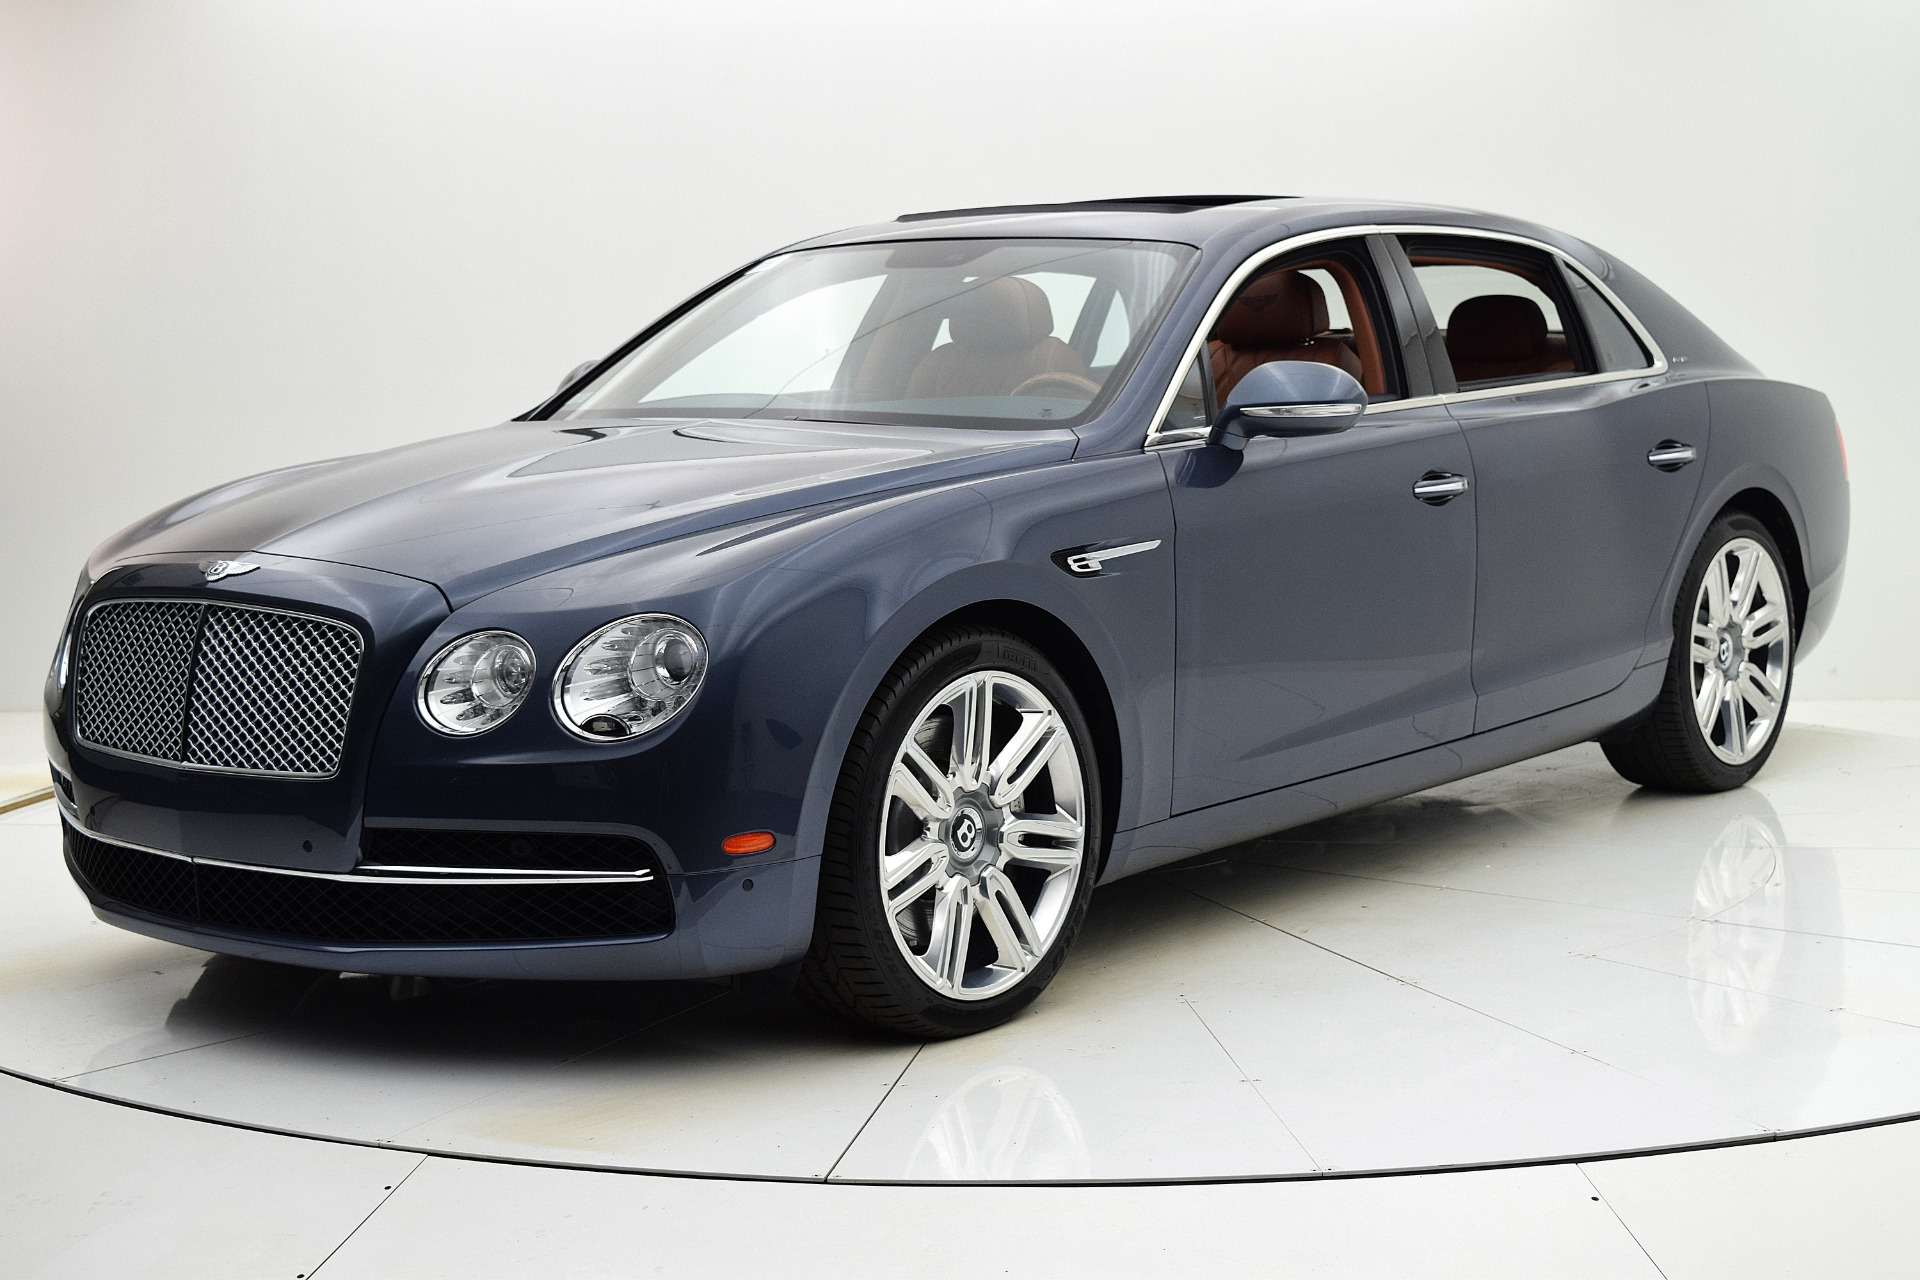 Used 2016 Bentley Flying Spur W12 for sale Sold at Bentley Palmyra N.J. in Palmyra NJ 08065 2